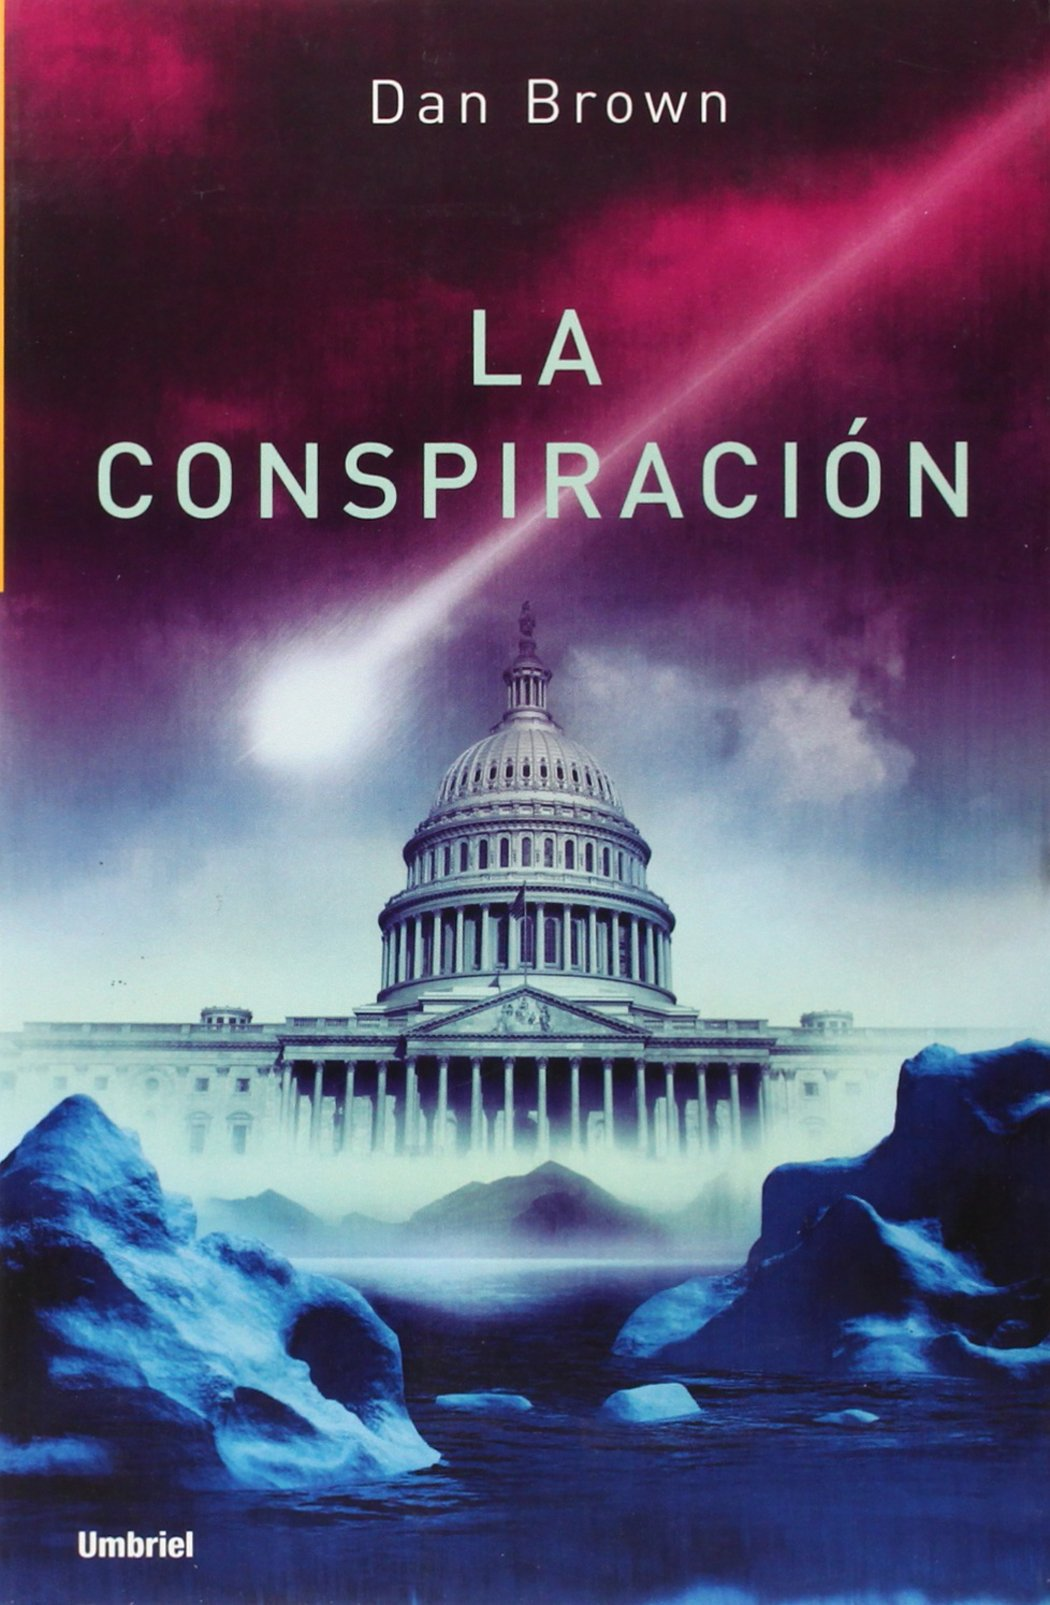 Amazon.com: La Conspiracion/Deception Point (Spanish Edition)  (9788495618825): Dan Brown, Alejandro Palomas: Books